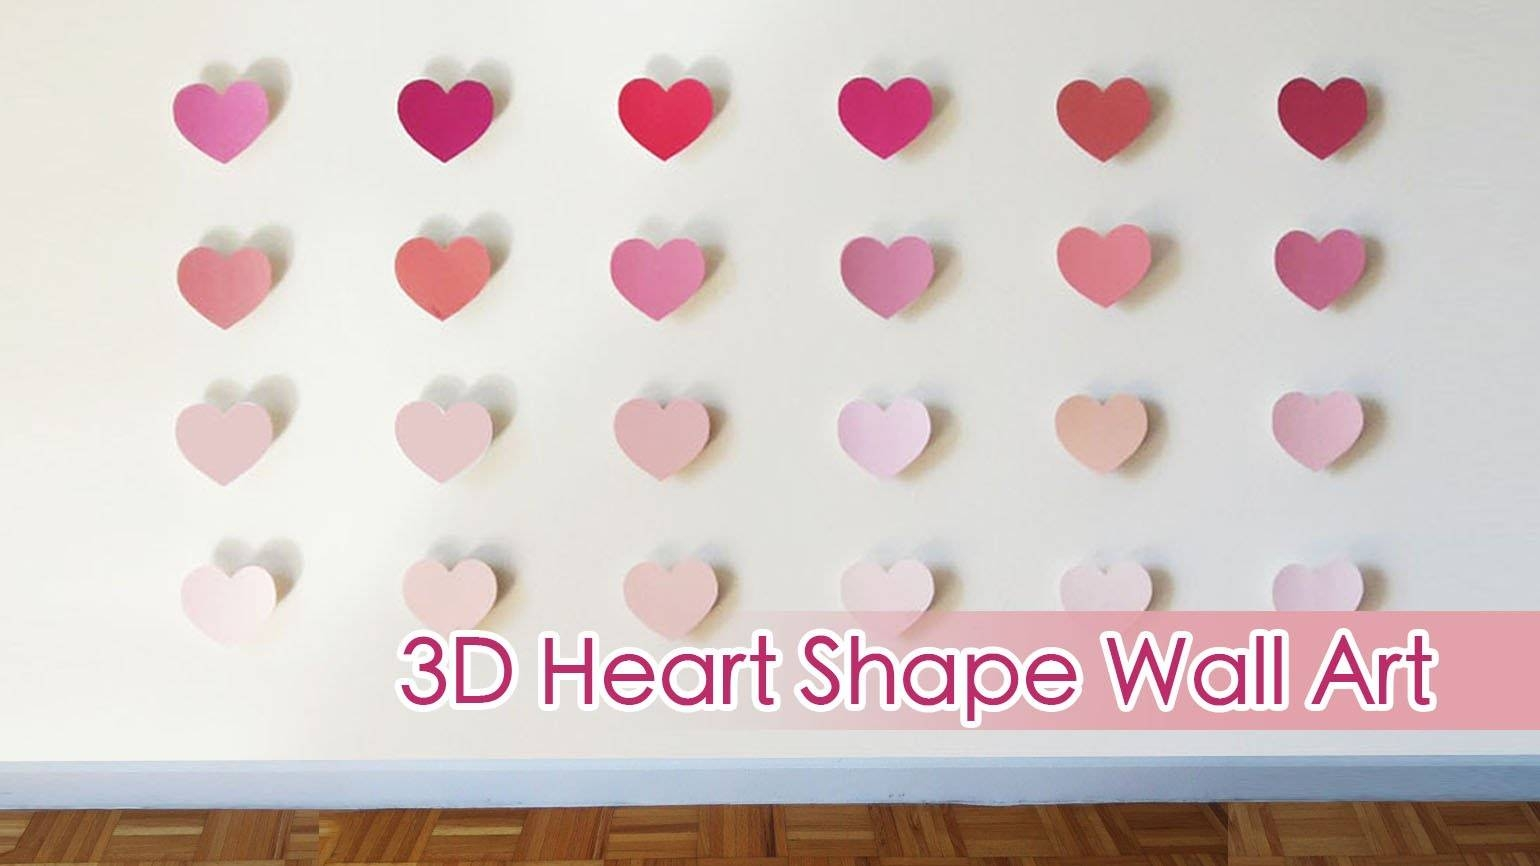 Ombre 3d Heart Shape Wall Art | Sunny Diy – Youtube Regarding Most Up To Date Heart 3d Wall Art (View 4 of 20)